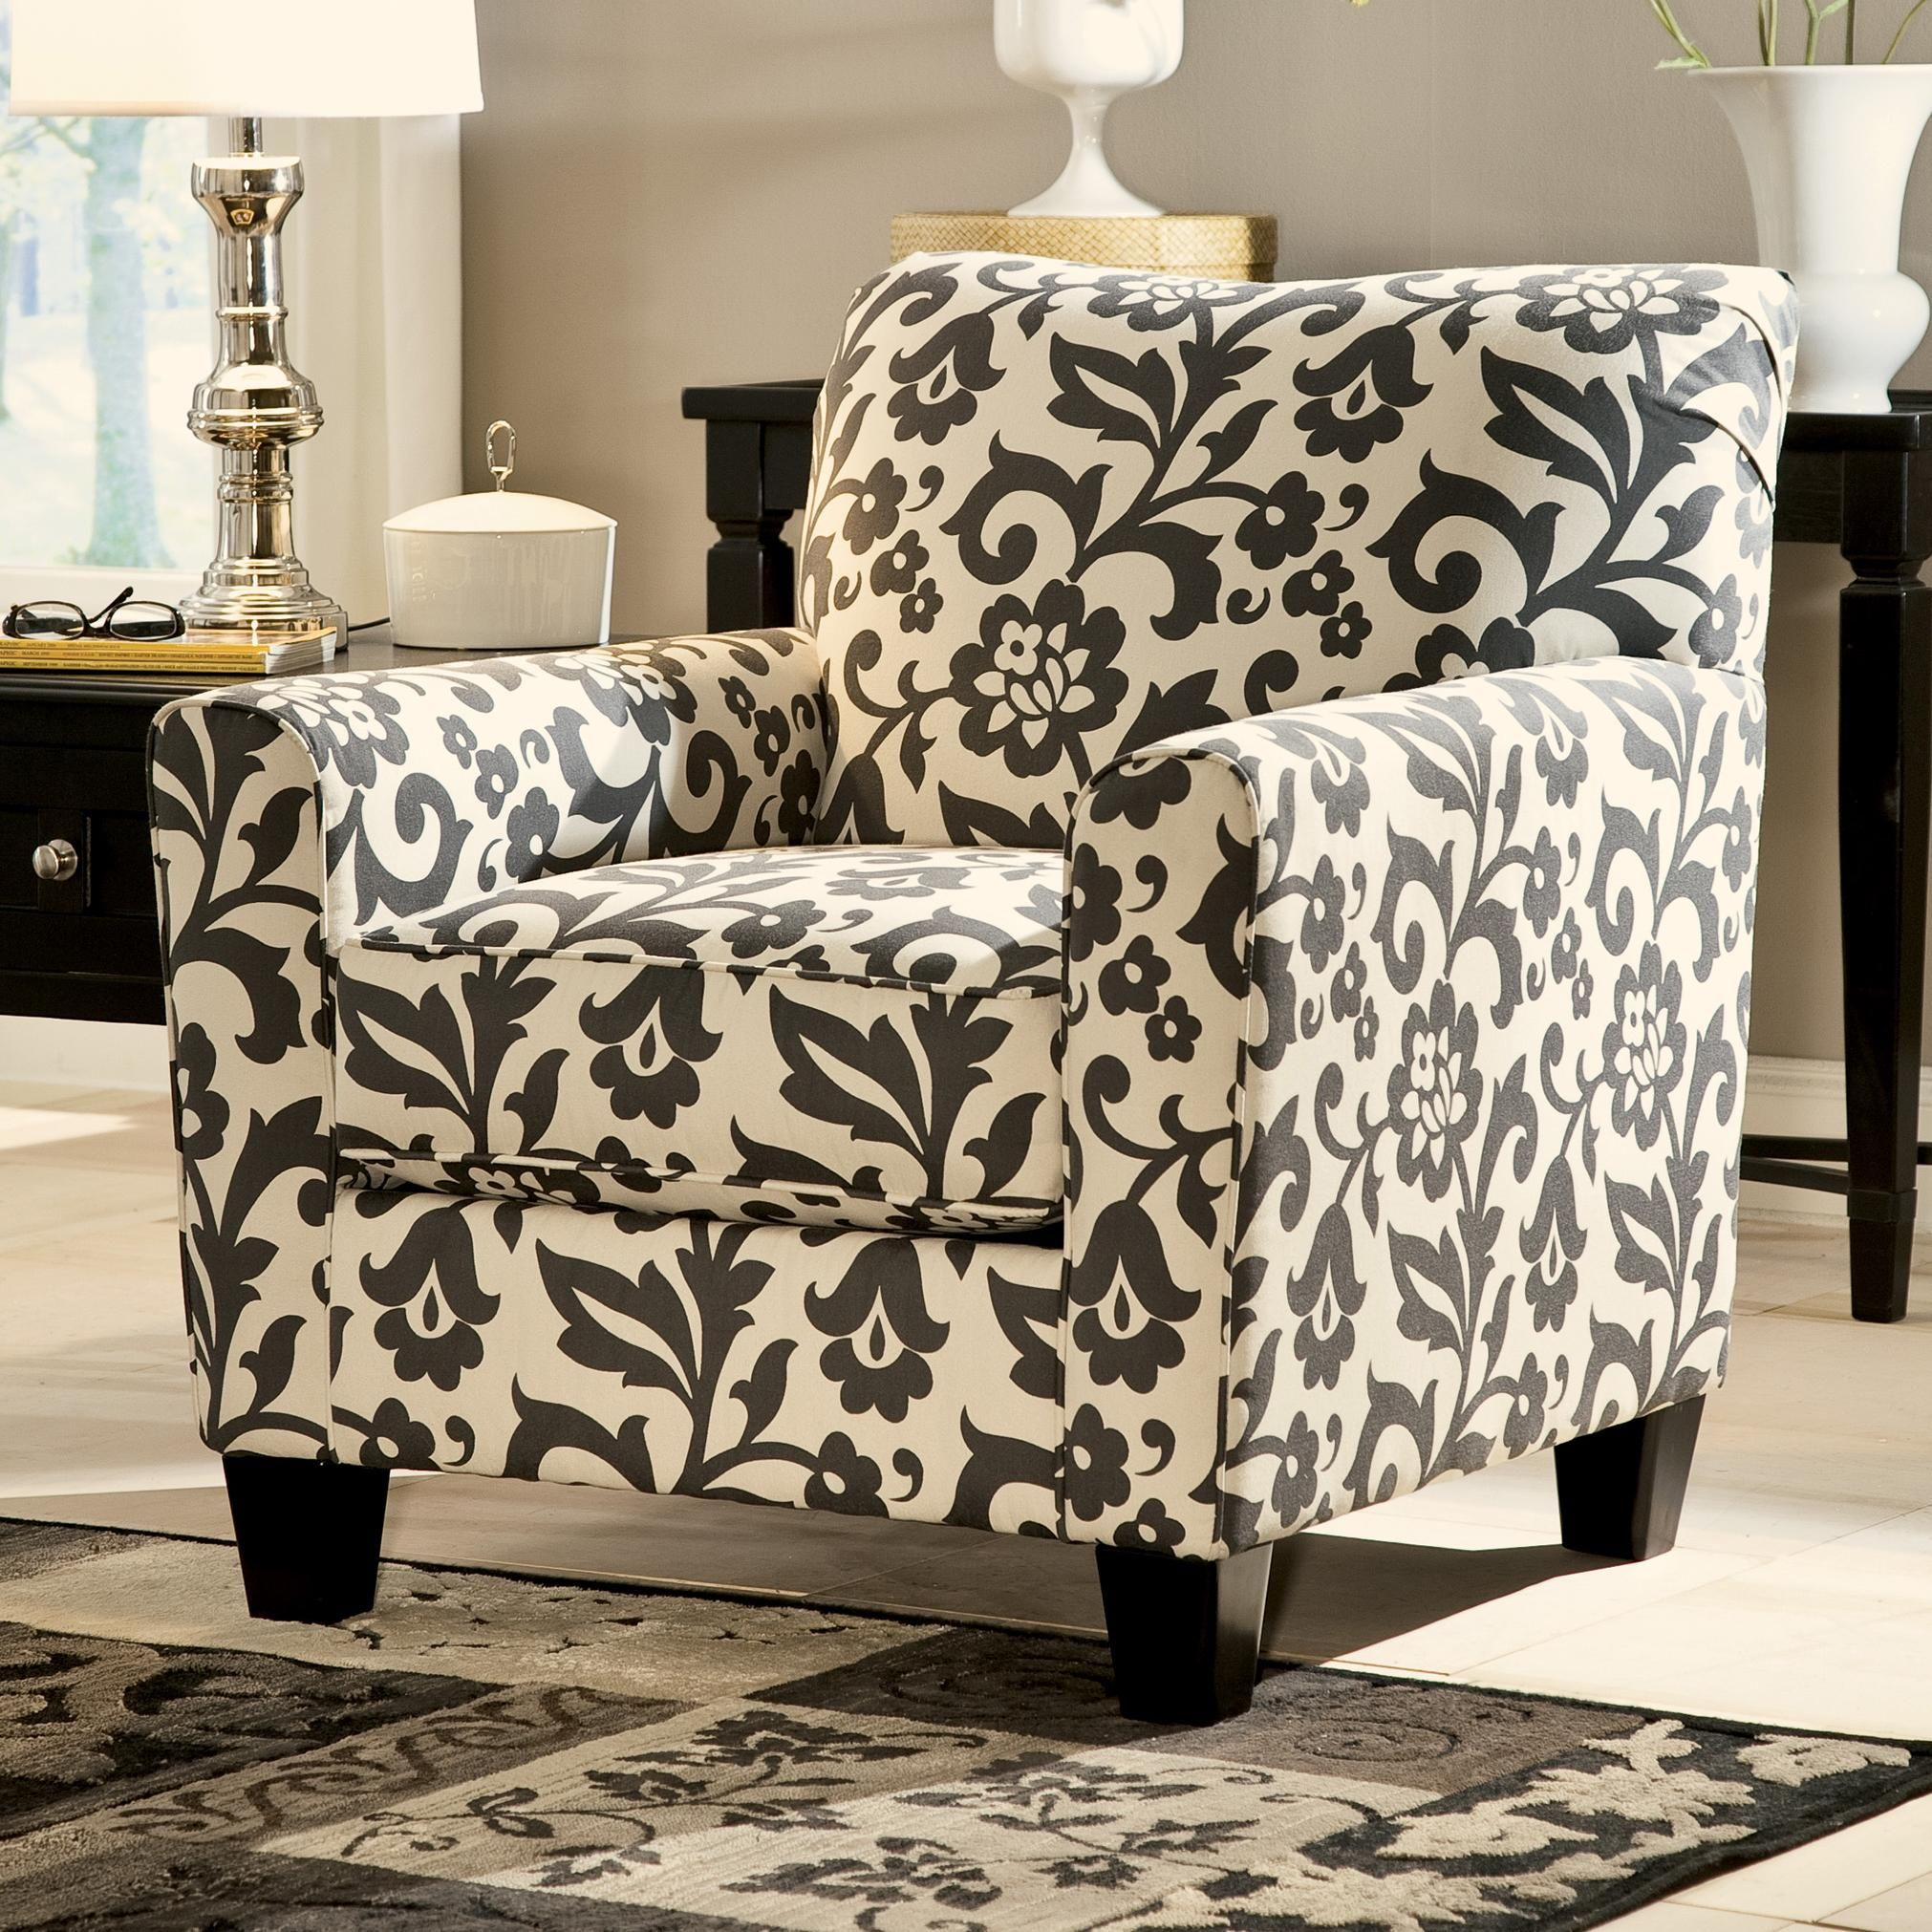 Accent Chair In Floral Print By Signature Design By Ashley Printed Accent Chairs Charcoal Accent Chair Floral Print Accent Chair #printed #living #room #chairs